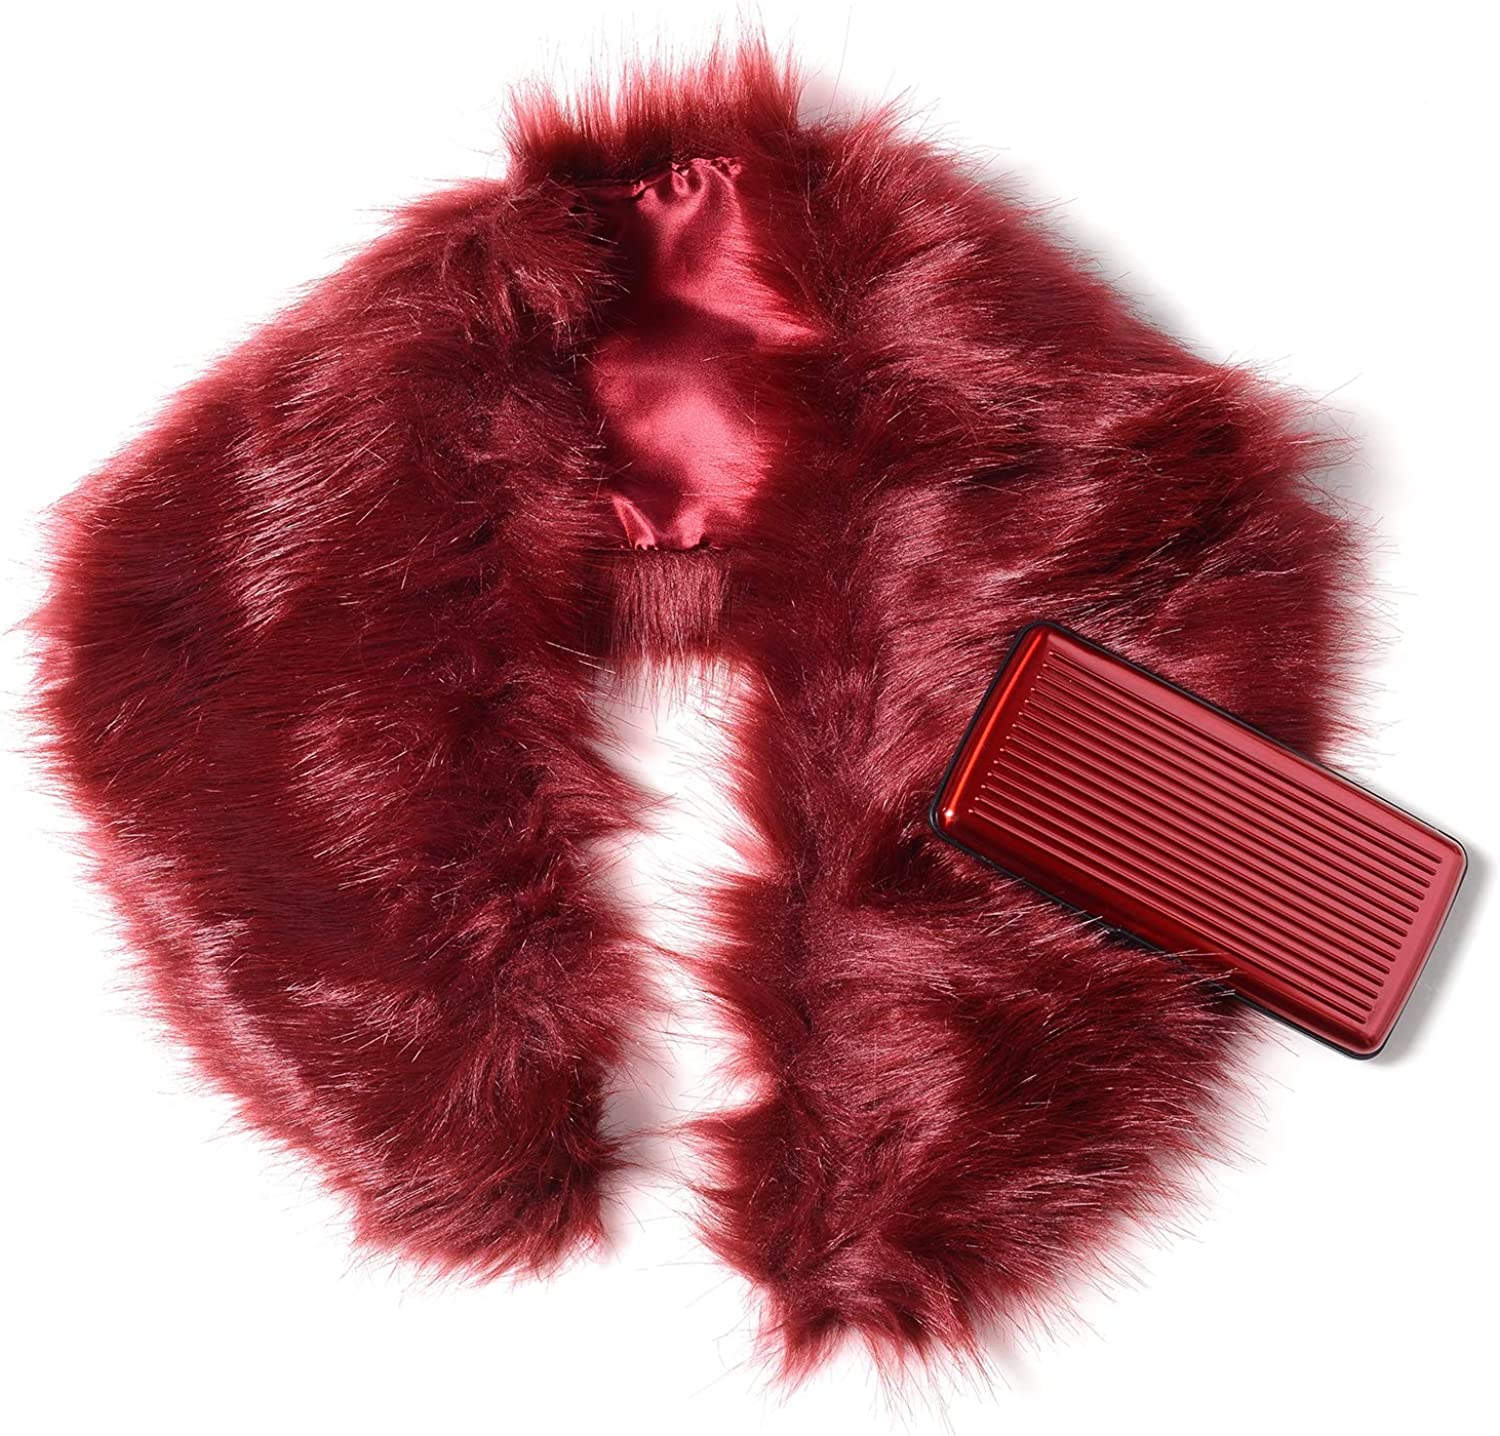 Wine Red Faux Fur Lightweight Scarf Wrap Hijabs For Women 33.86x5.5